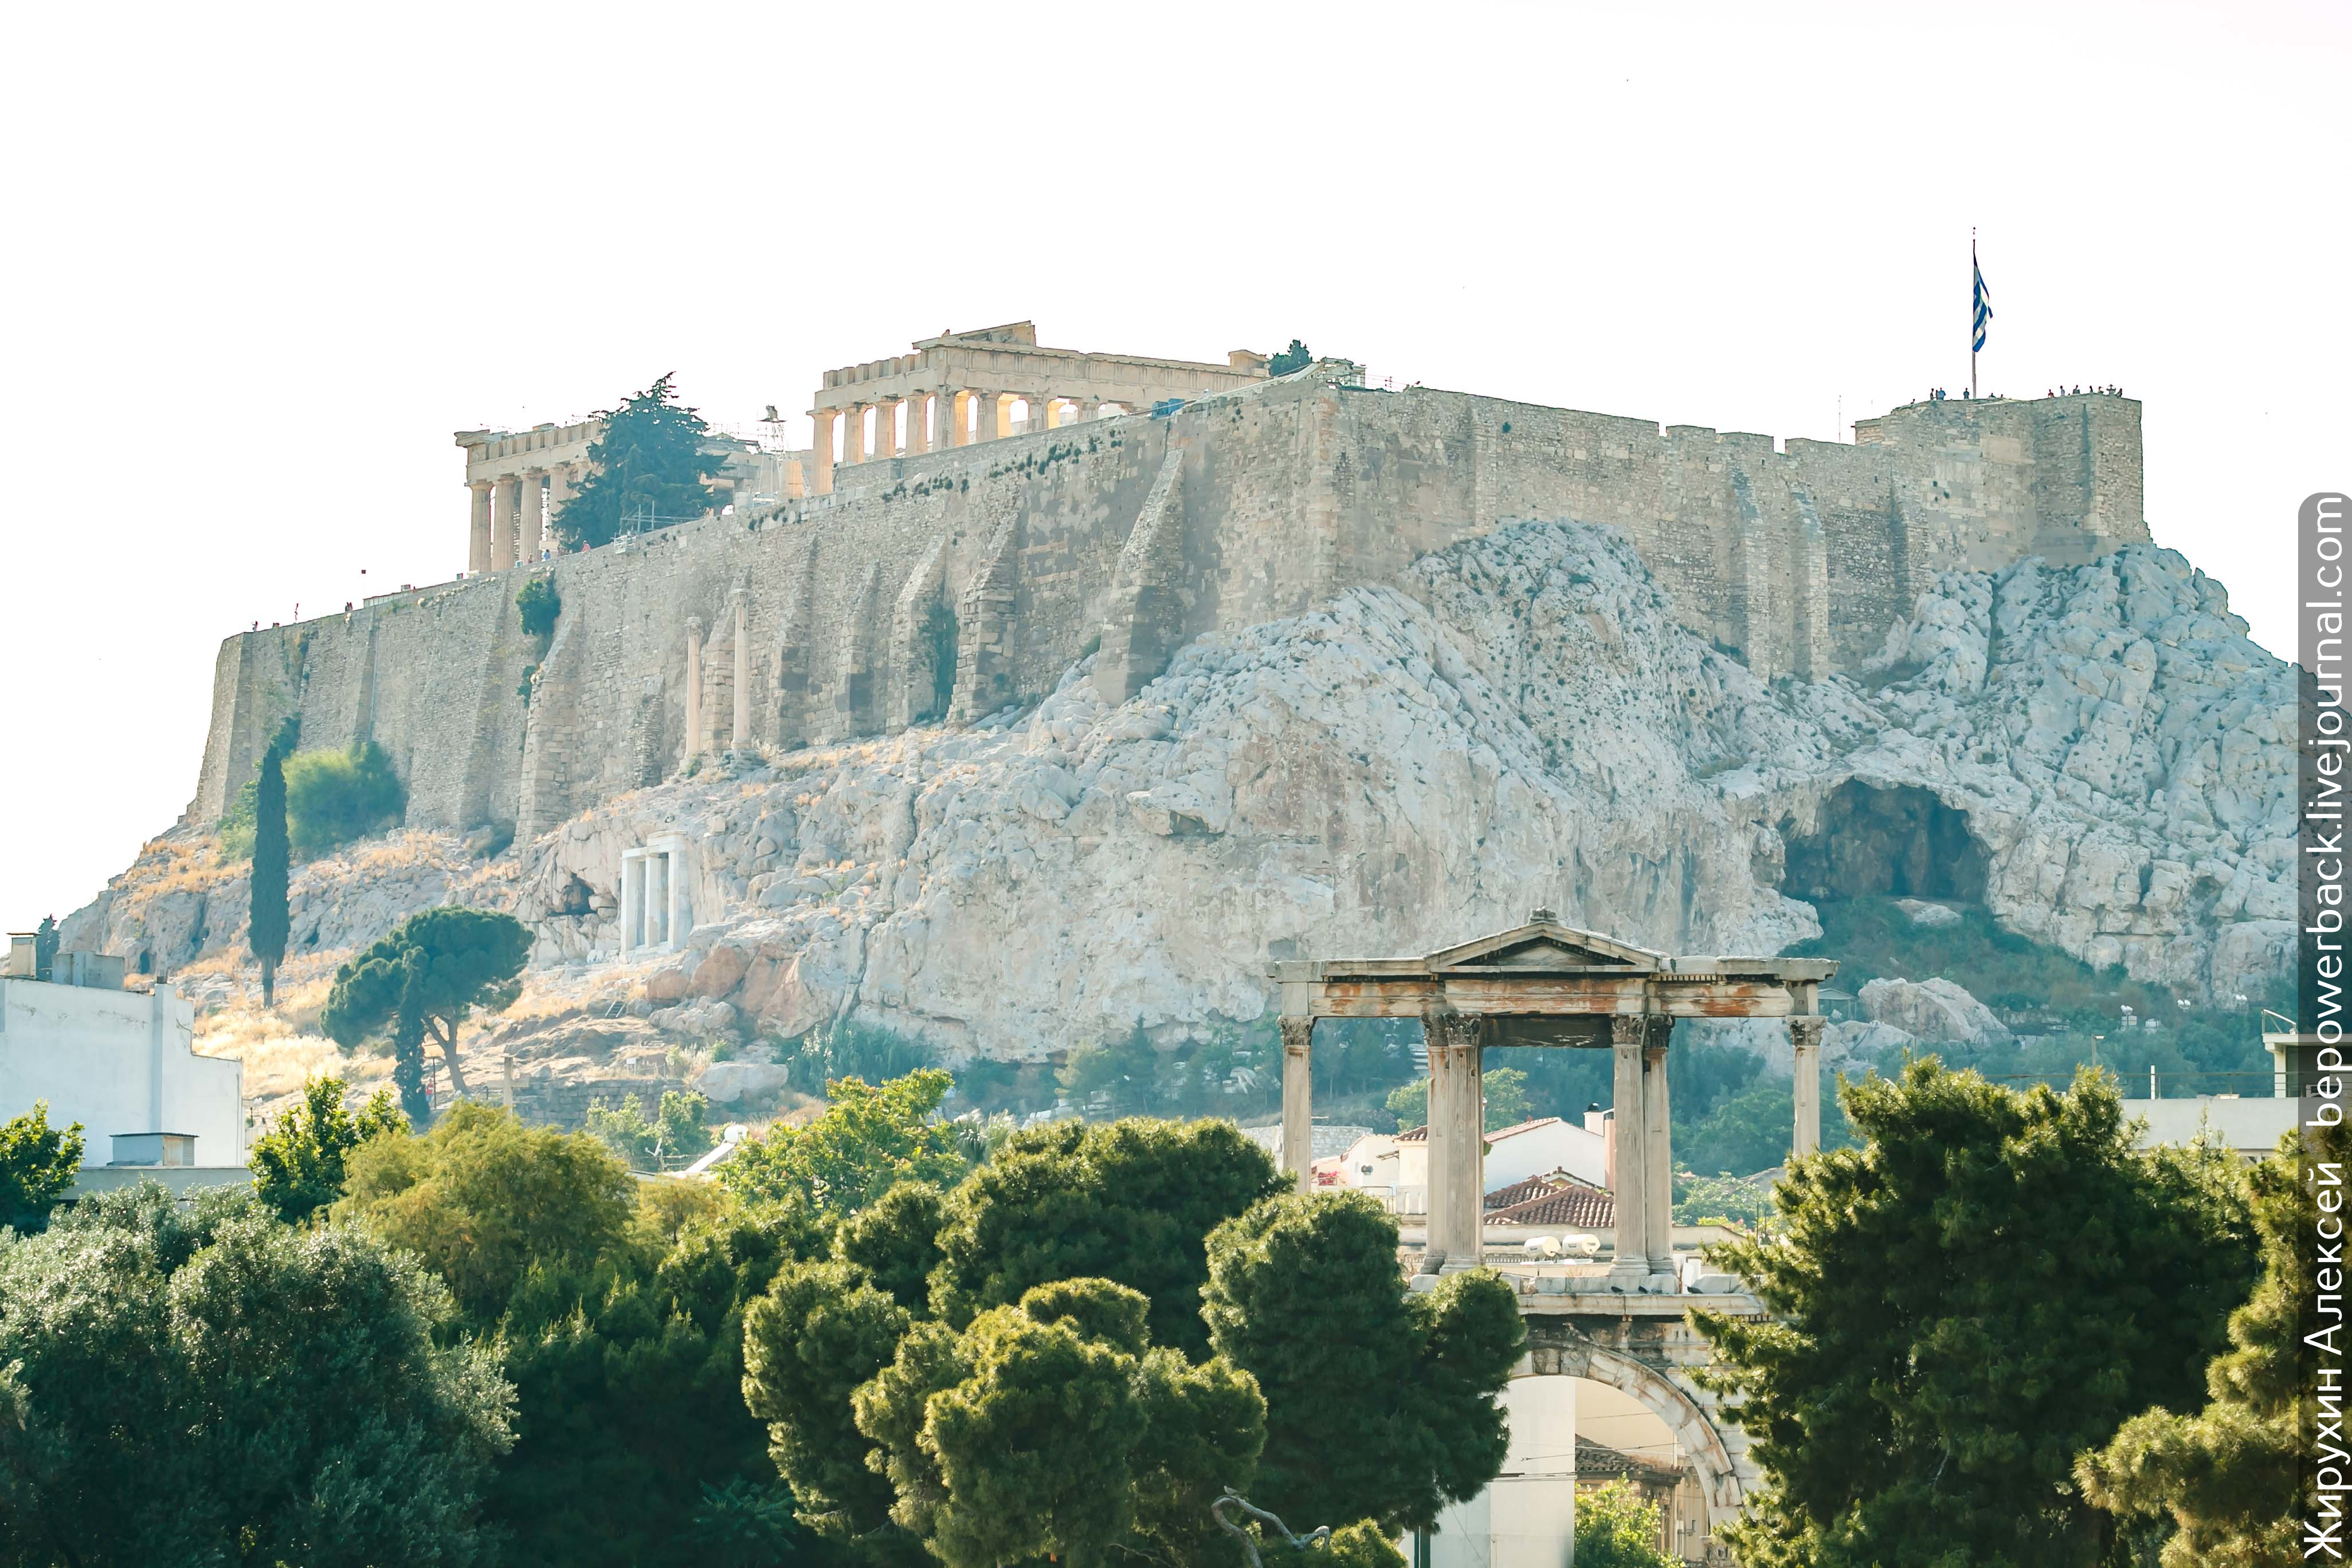 athens the acropolis and the agora Get an expert introduction to athens' most important archaeological sites — the acropolis and ancient agora — during a 3-hour walking tour with skip-the-line access.